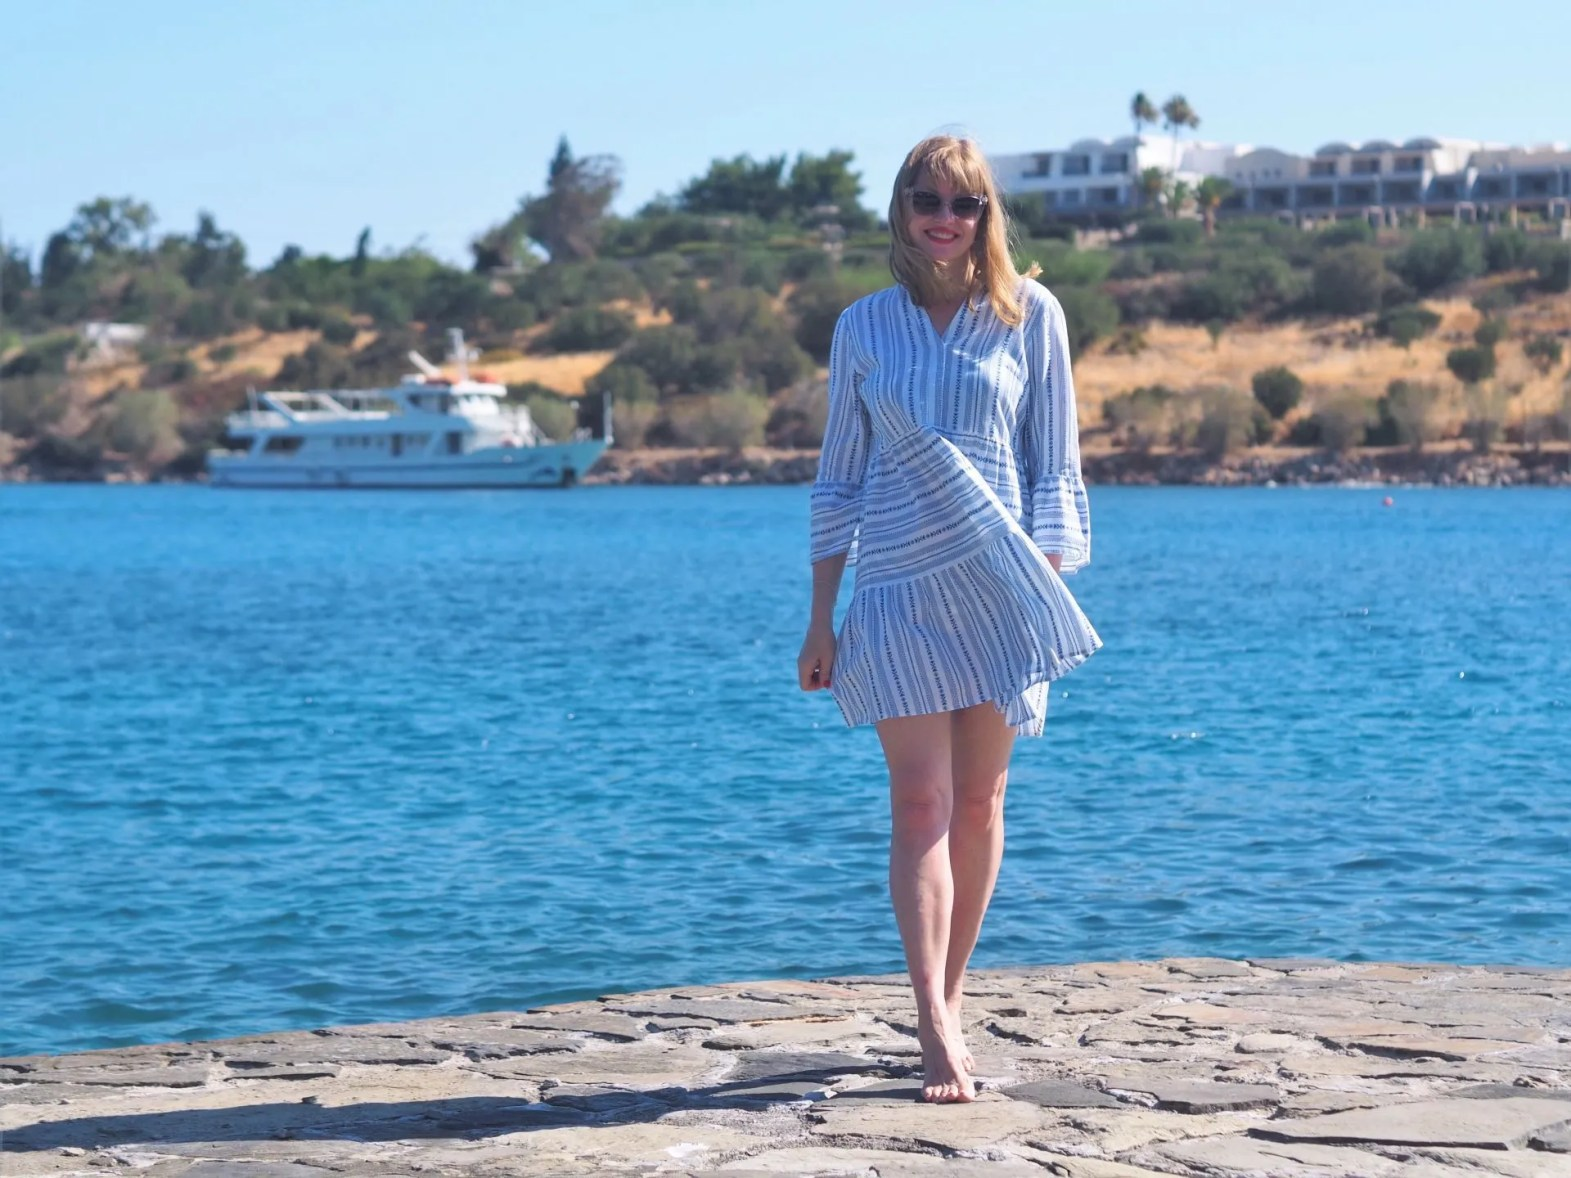 Holiday outfits: blue striped dress